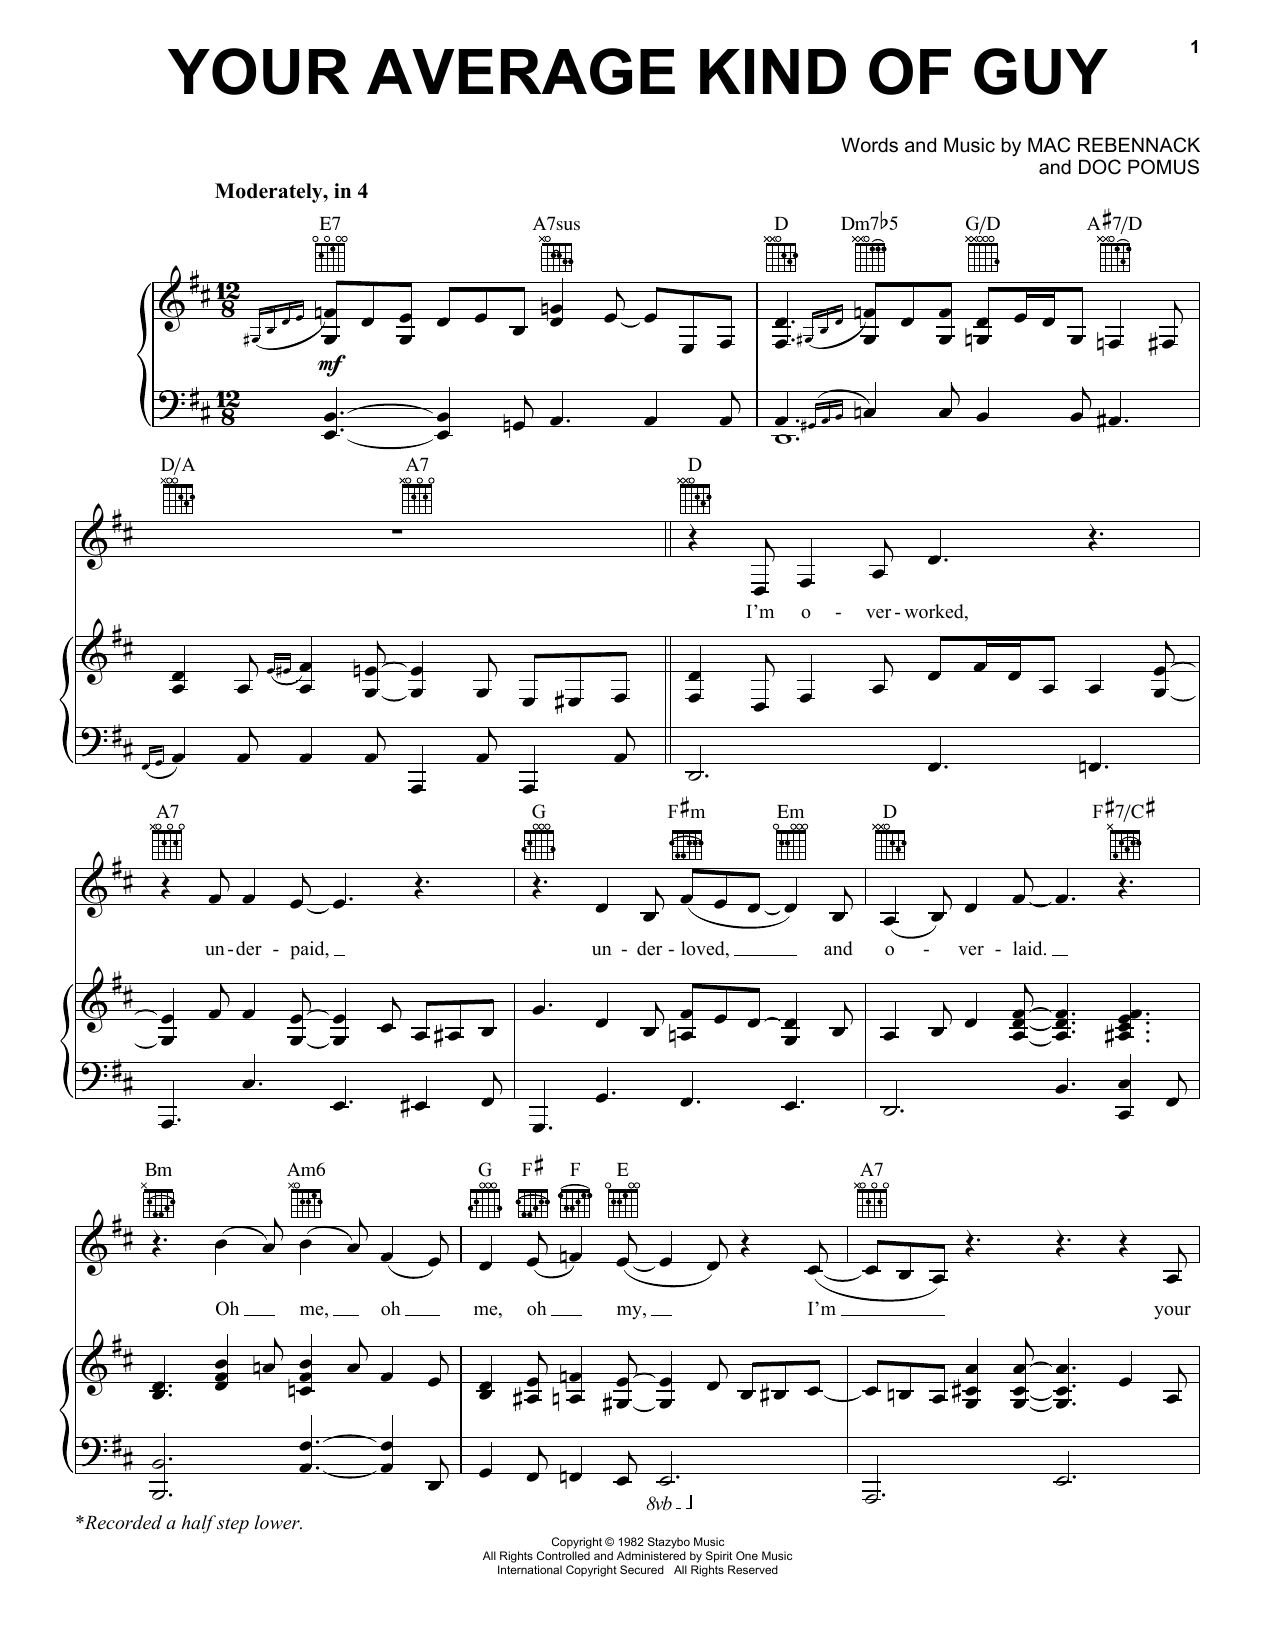 Dr. John Your Average Kind Of Guy sheet music notes and chords. Download Printable PDF.